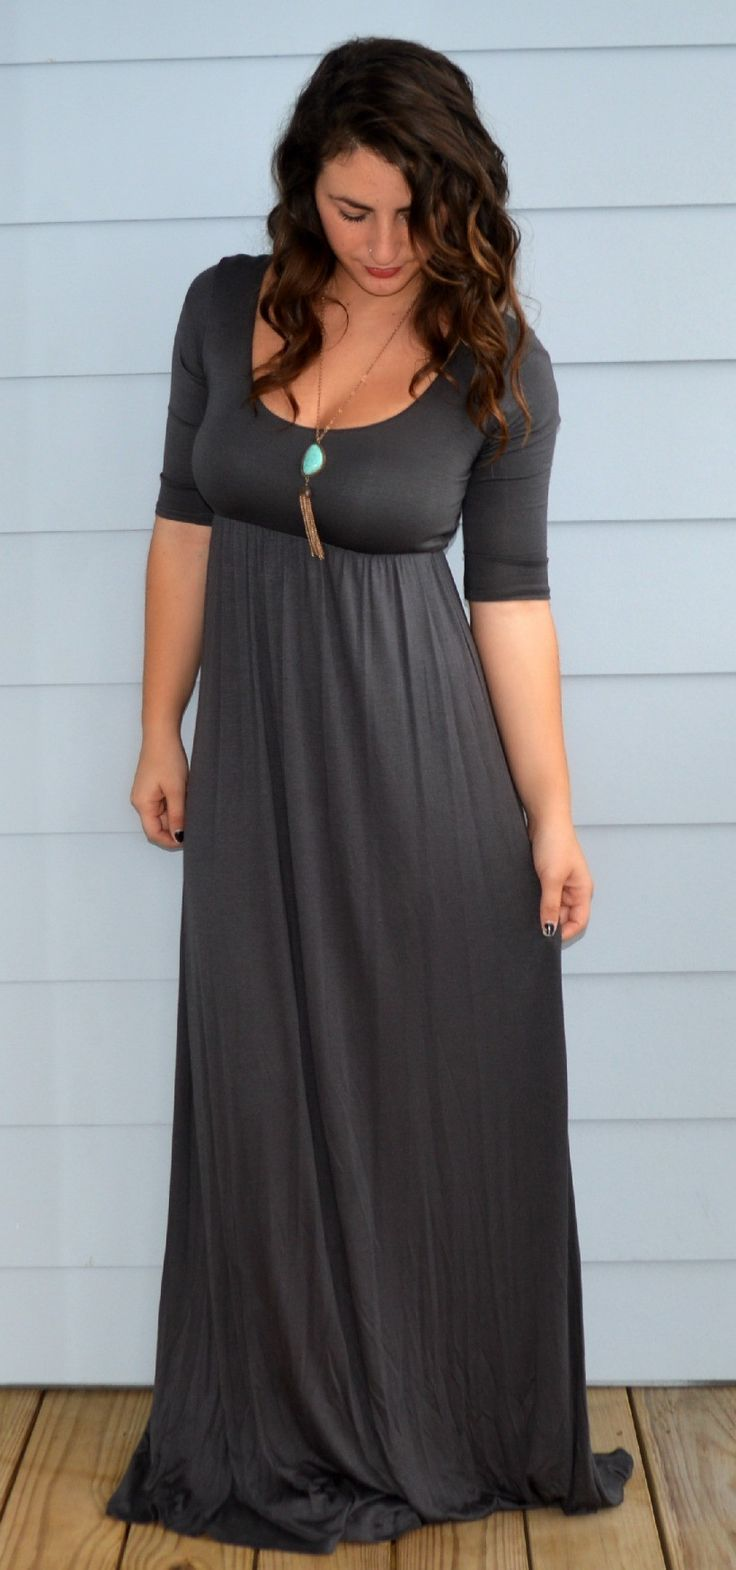 this another one of those dresses I love and the color of it is unique because there aren't really a lot of dress this color.: Grey Maxi Dresses, Long Summer Dress, Long Sleeve Maxi Dress, Quarter Sleeve, Long Dresses Casual Maxi, Dresses Skirts, Grey